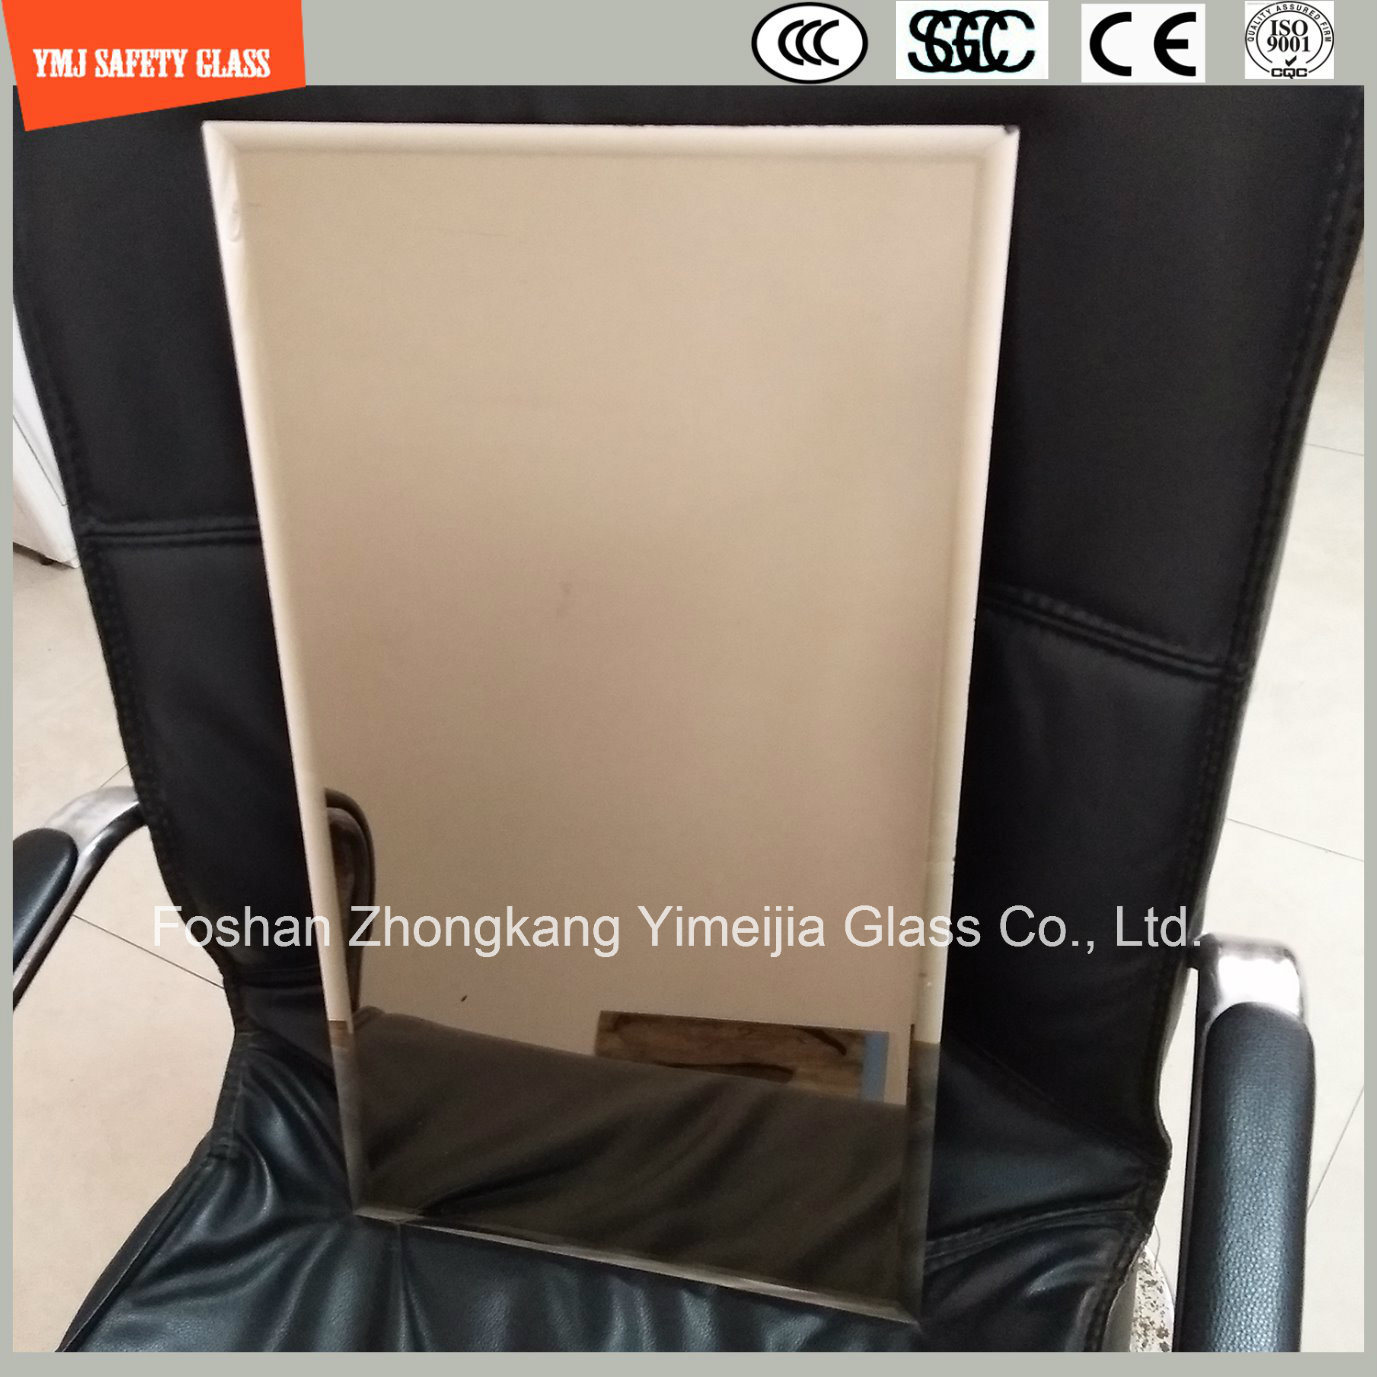 3-12mm Silver Glass Mirror for Shower Room, Dressing, Furniture